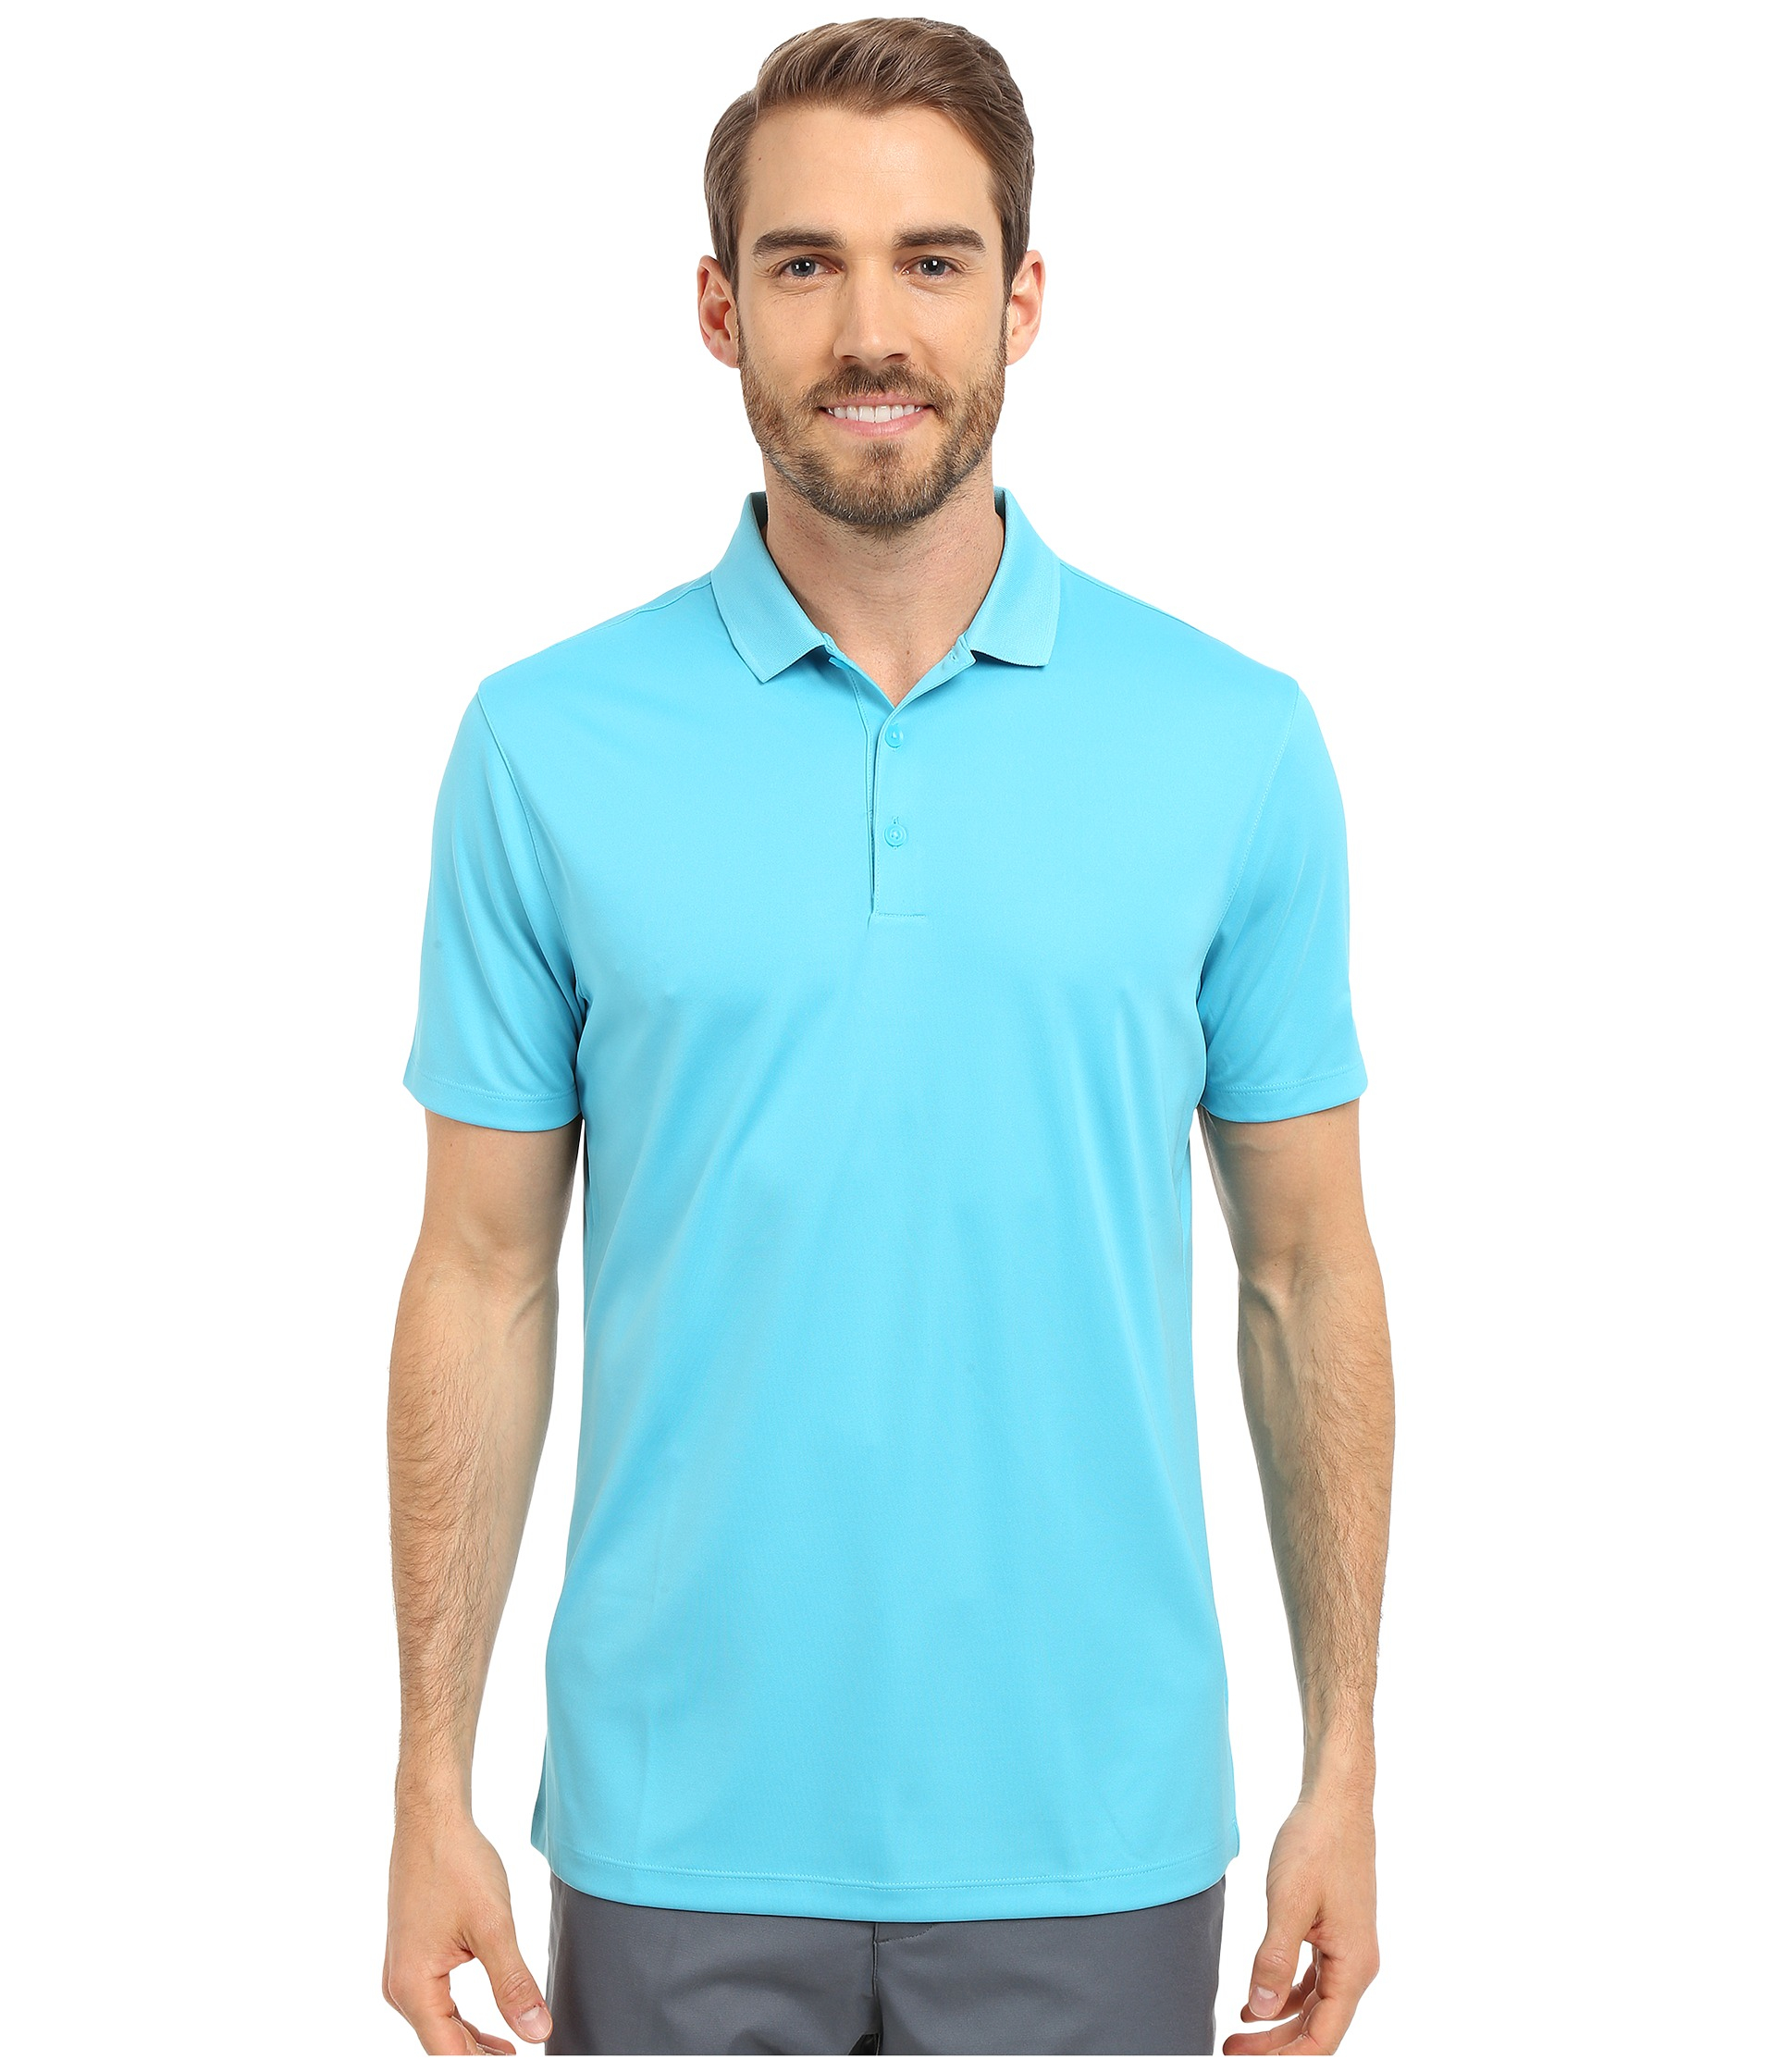 d2facb0f Nike Victory Solid Polo in Blue for Men - Lyst